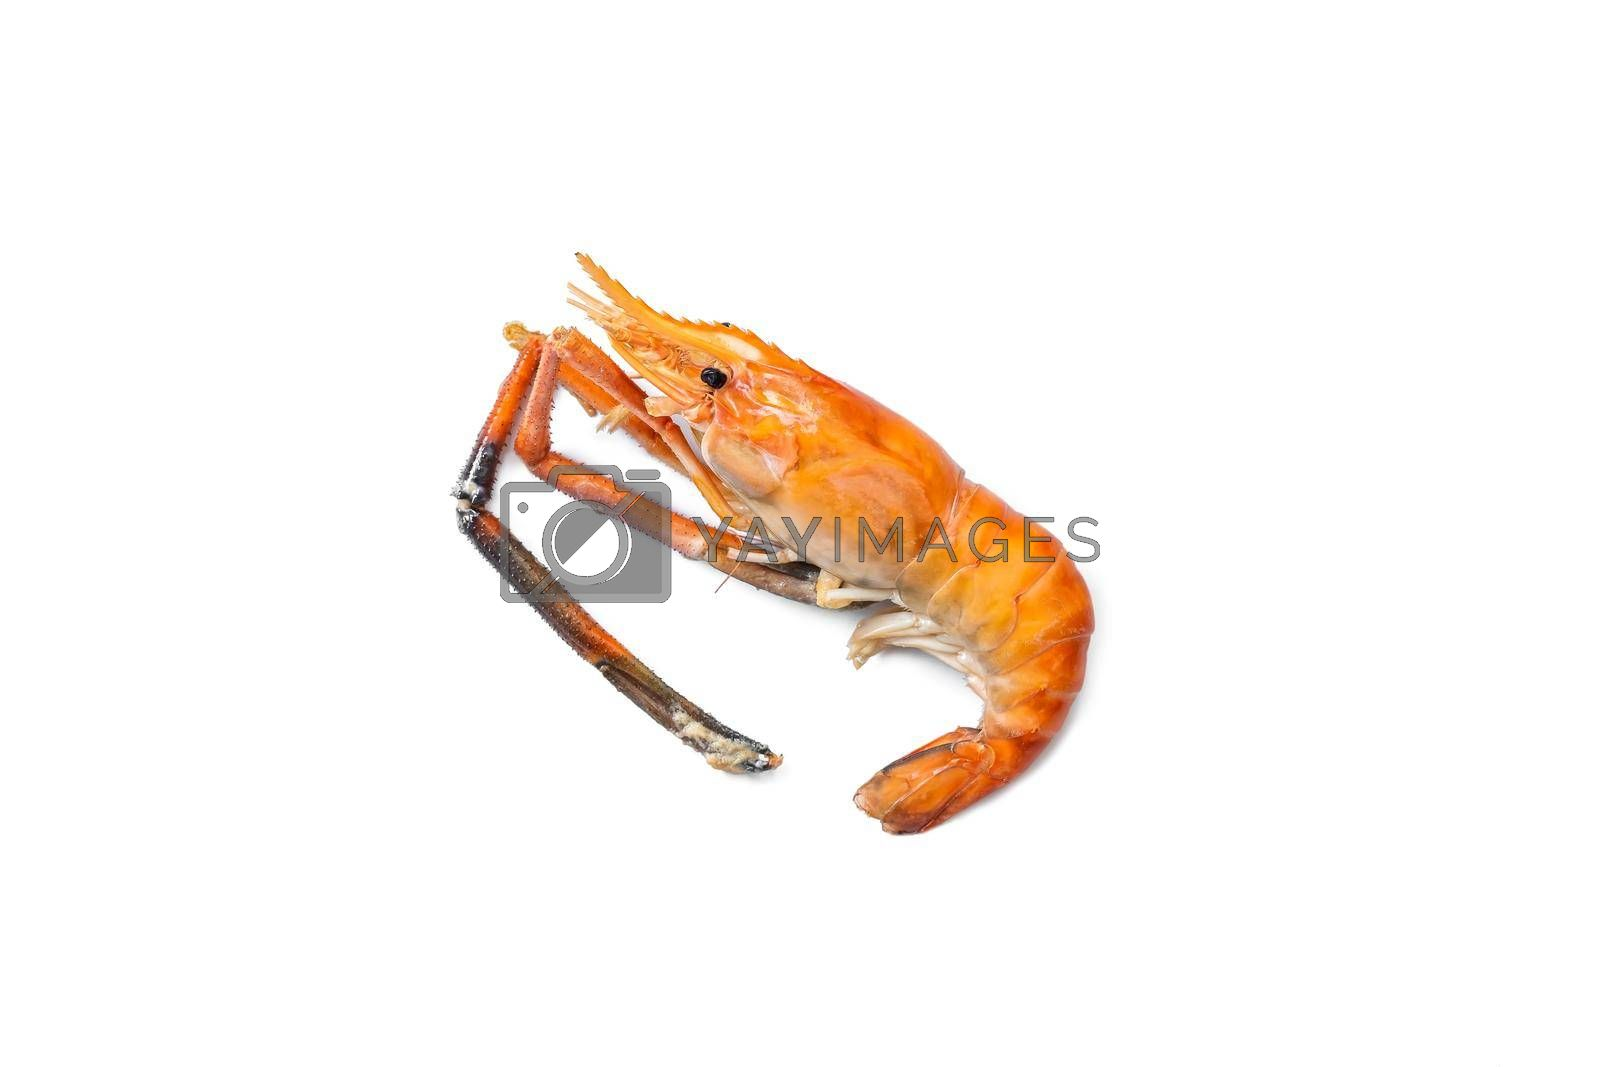 Grilled large river prawn are ready to eat isolated on white background.